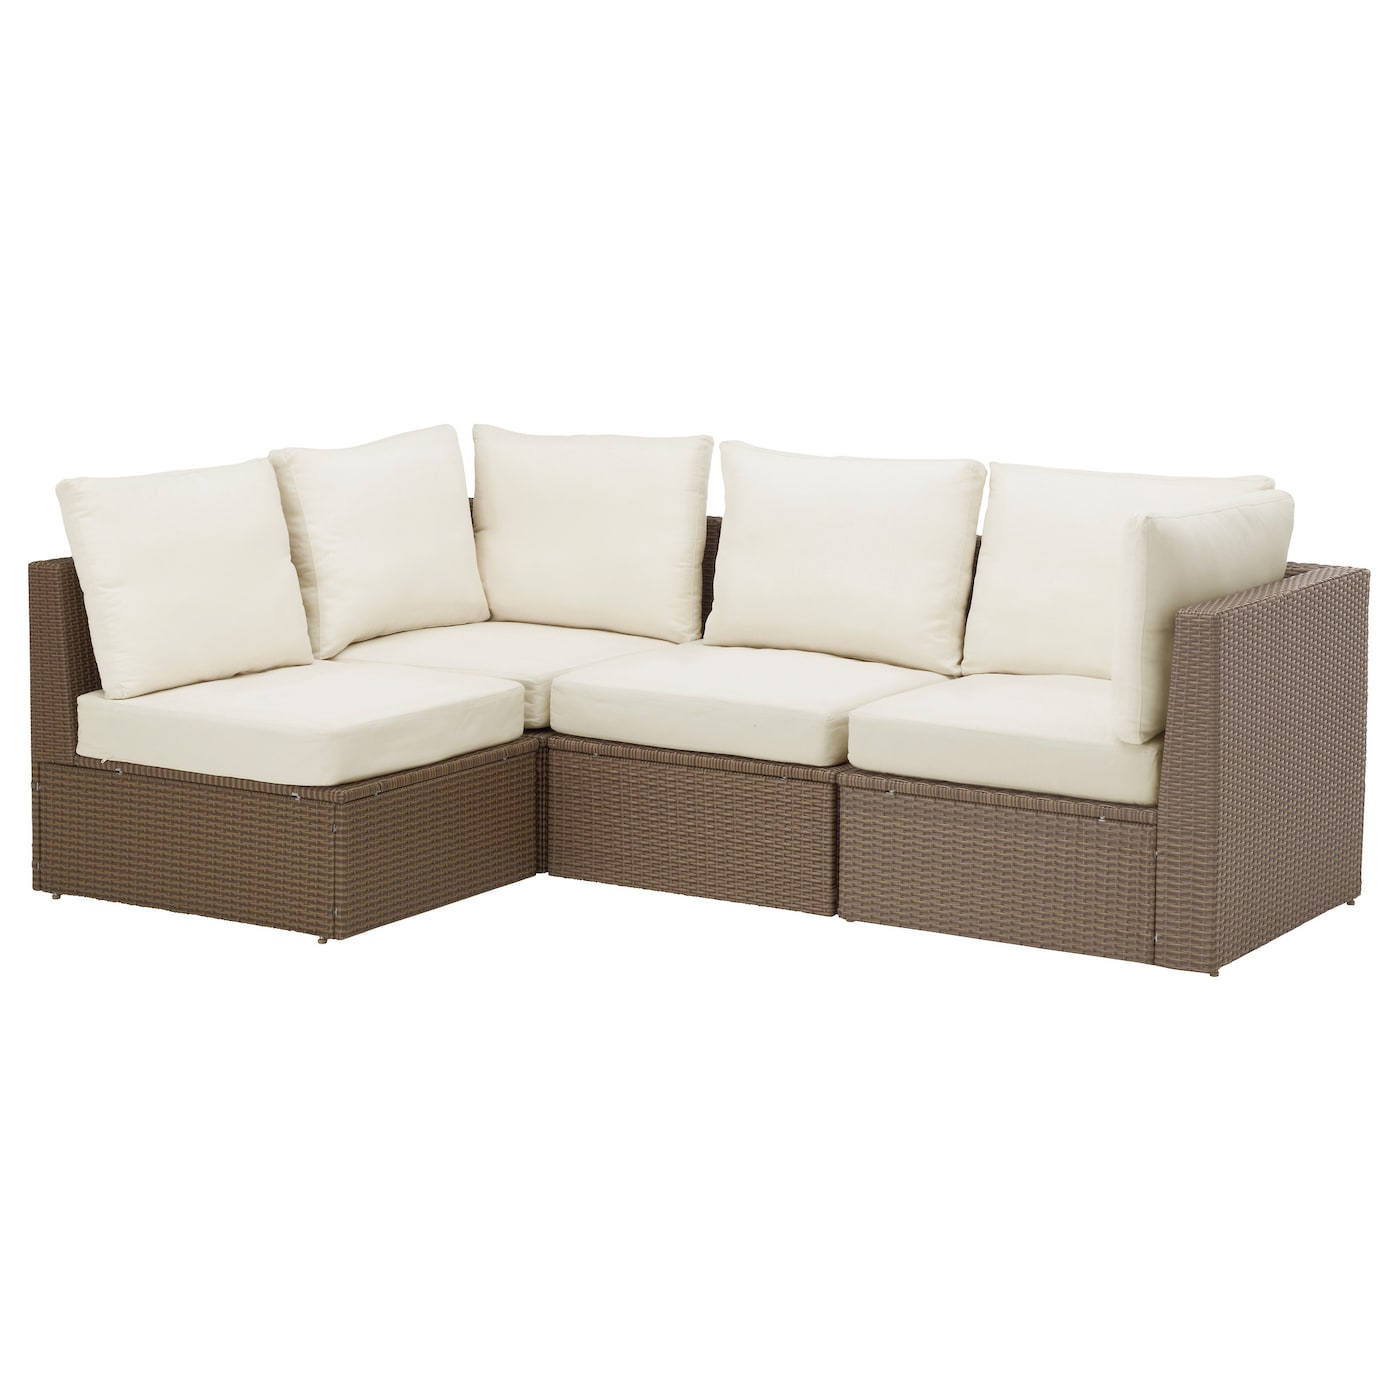 Arholma corner sofa 3 1 outdoor brown beige 141 217x76x66 for Balkon sofa